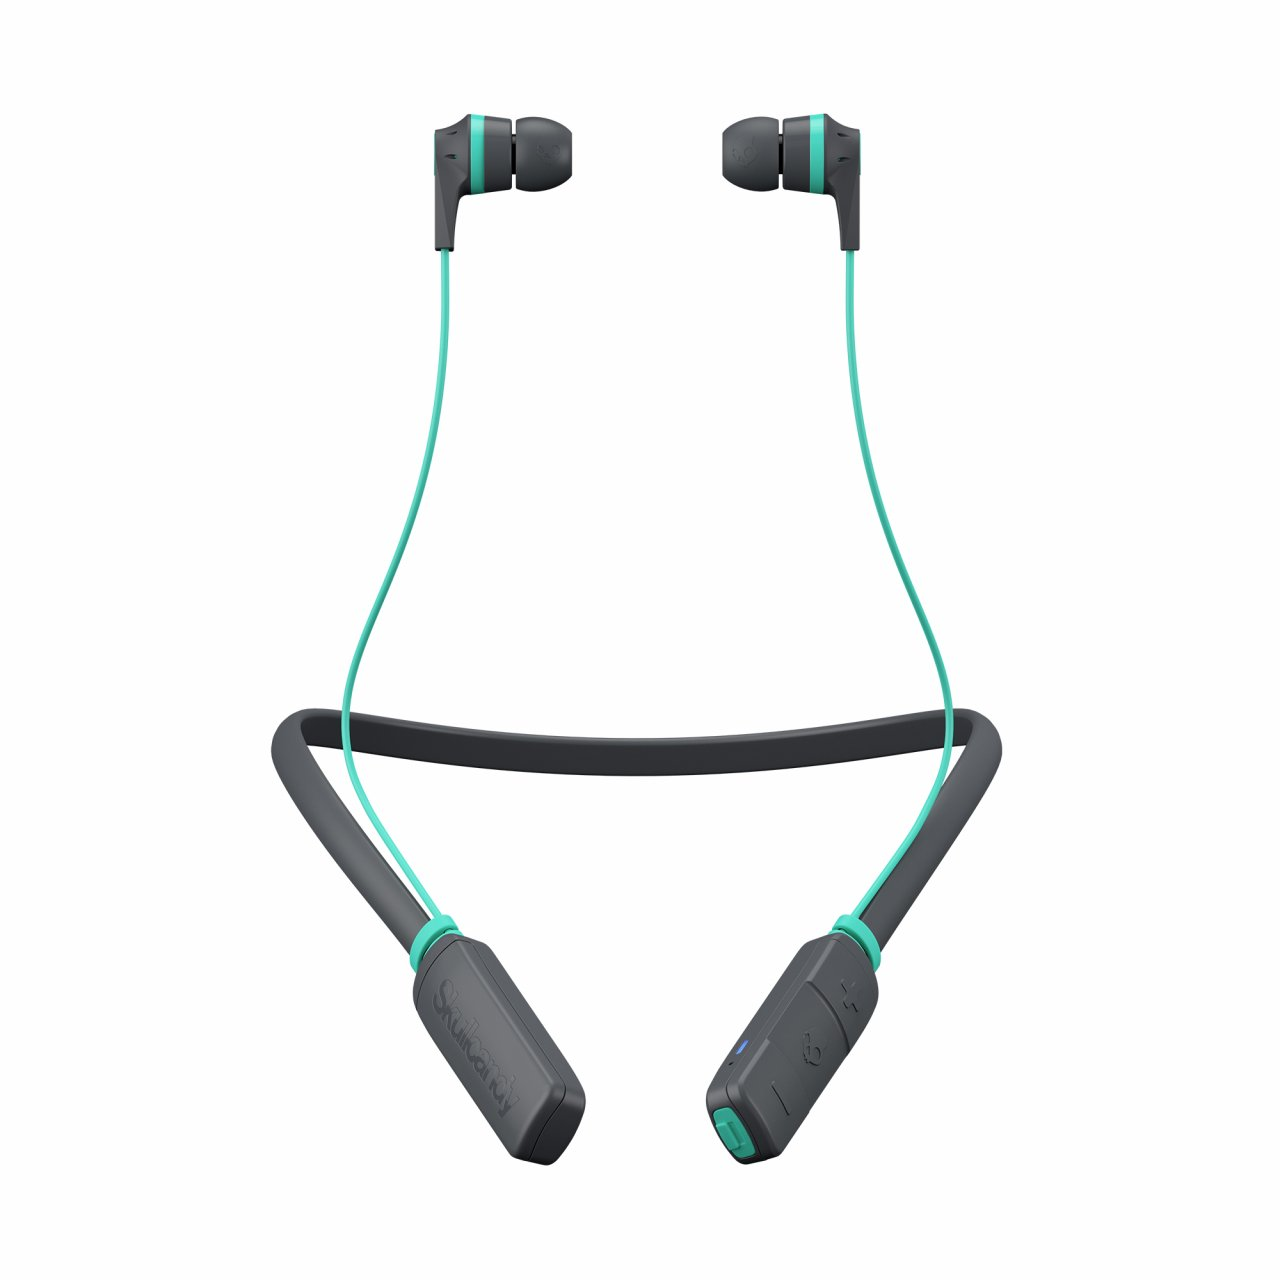 Skullcandy Headphone With Mic Wiring Diagram Opinions About For Headphones Shop Ink D Wireless Earphones Free Delivery Rh Com Xbox Cord